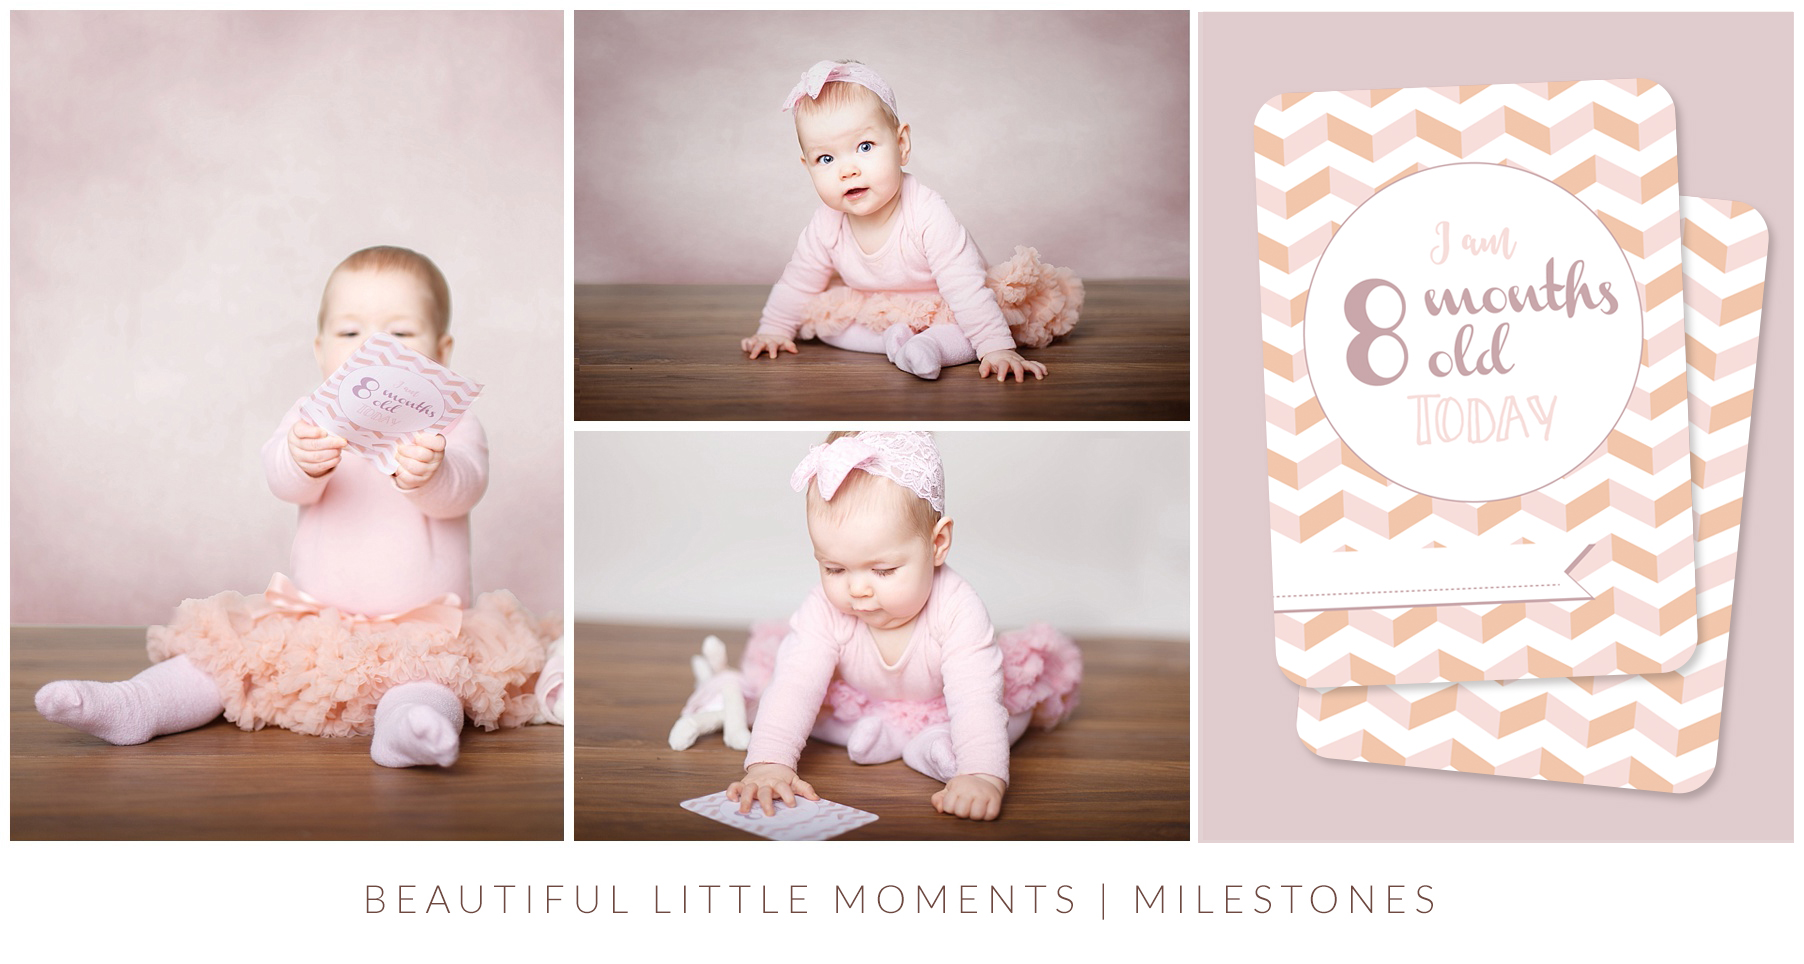 8 month milestone photos